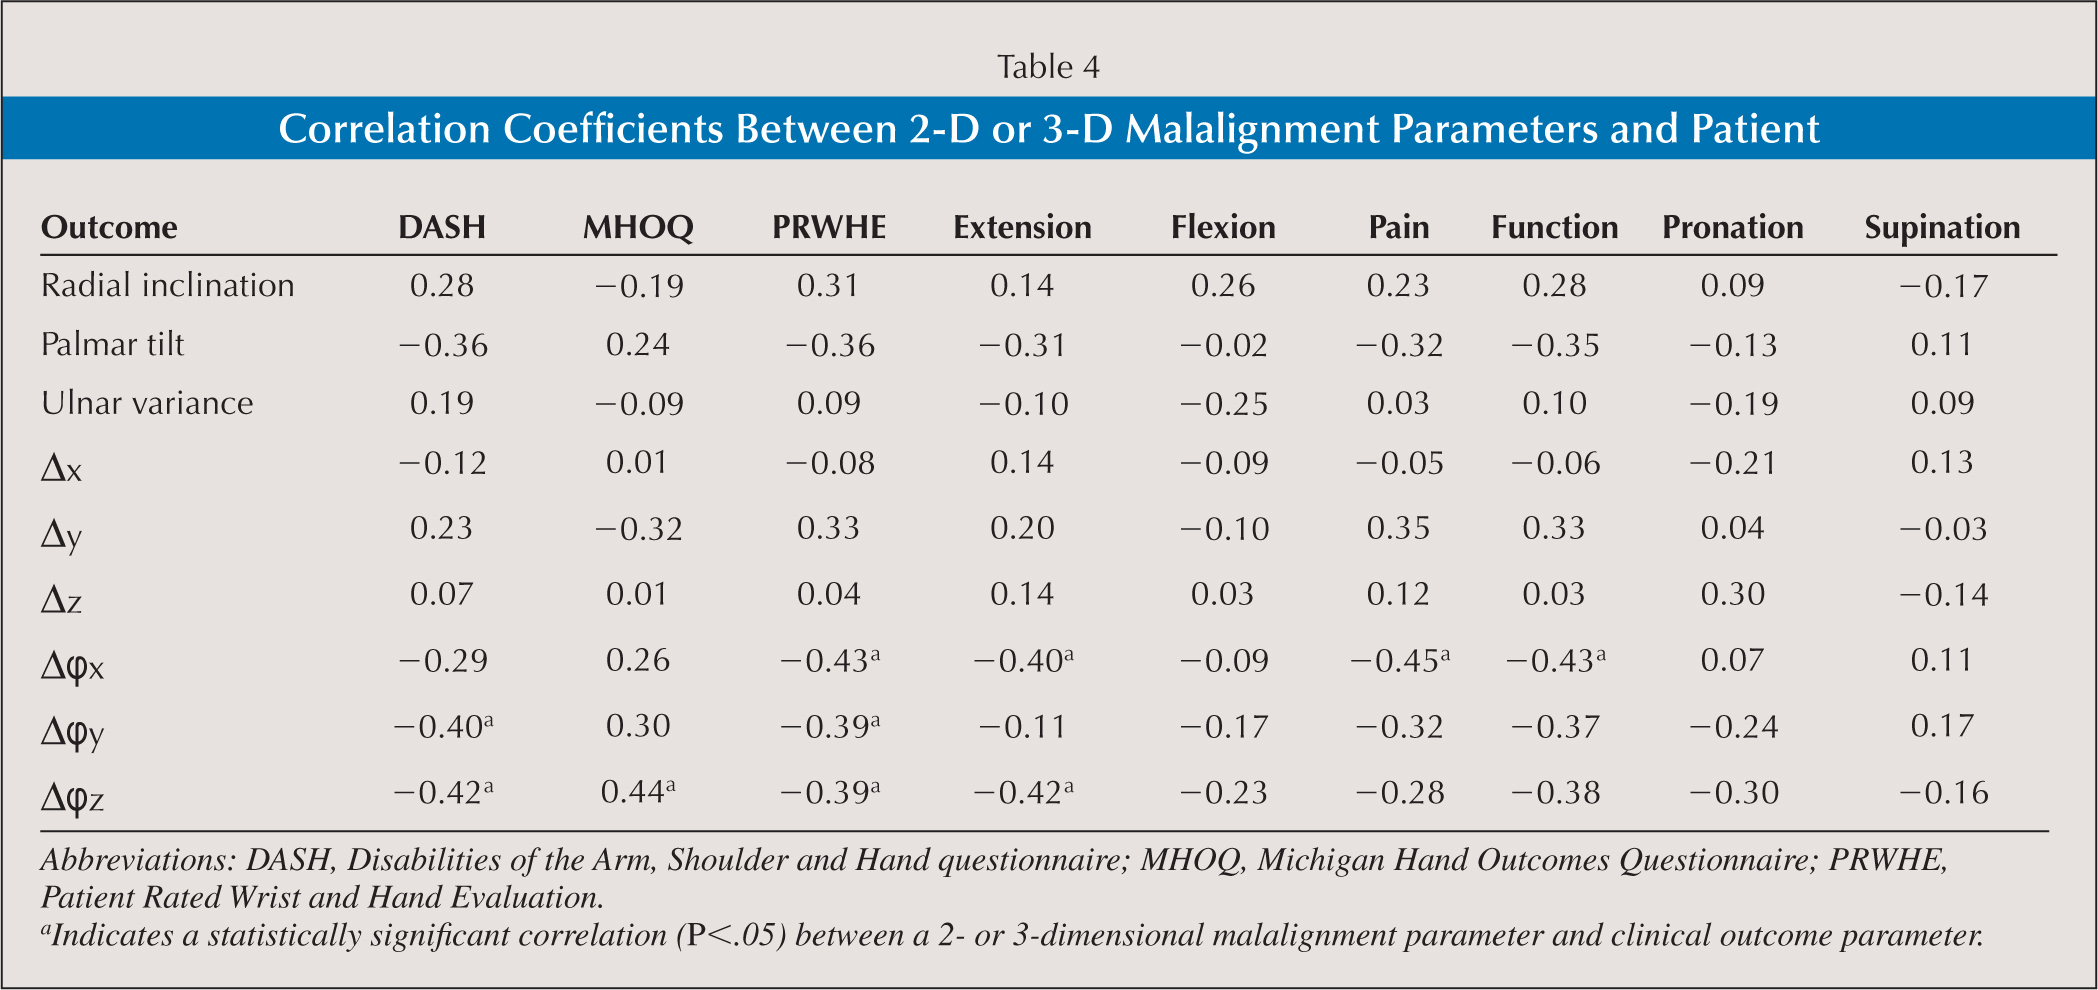 Correlation Coefficients Between 2-D or 3-D Malalignment Parameters and Patient